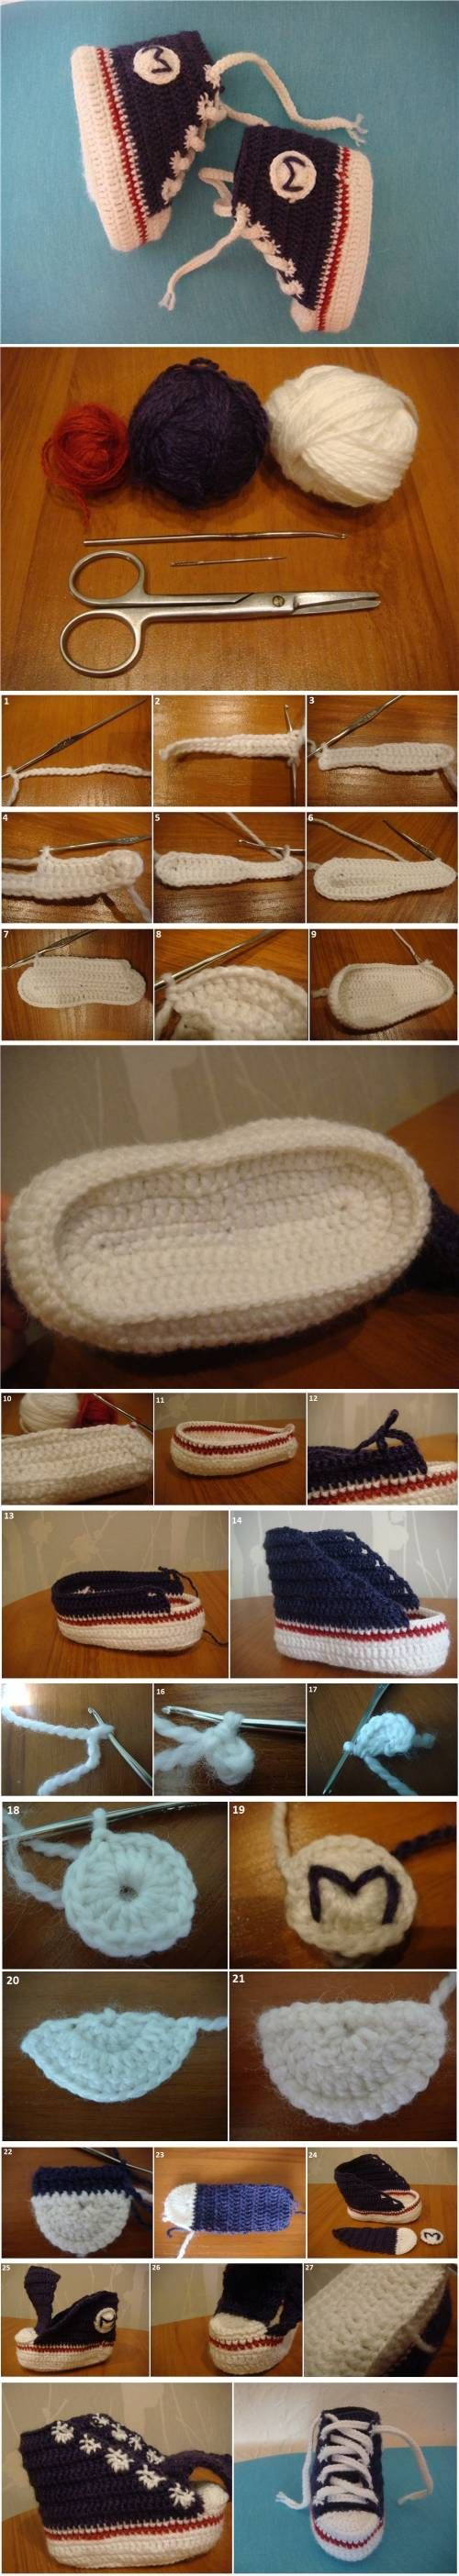 How to DIY Sneaker Style Crochet Baby Booties | iCreativeIdeas.com Follow Us on Facebook --> https://www.facebook.com/icreativeideas